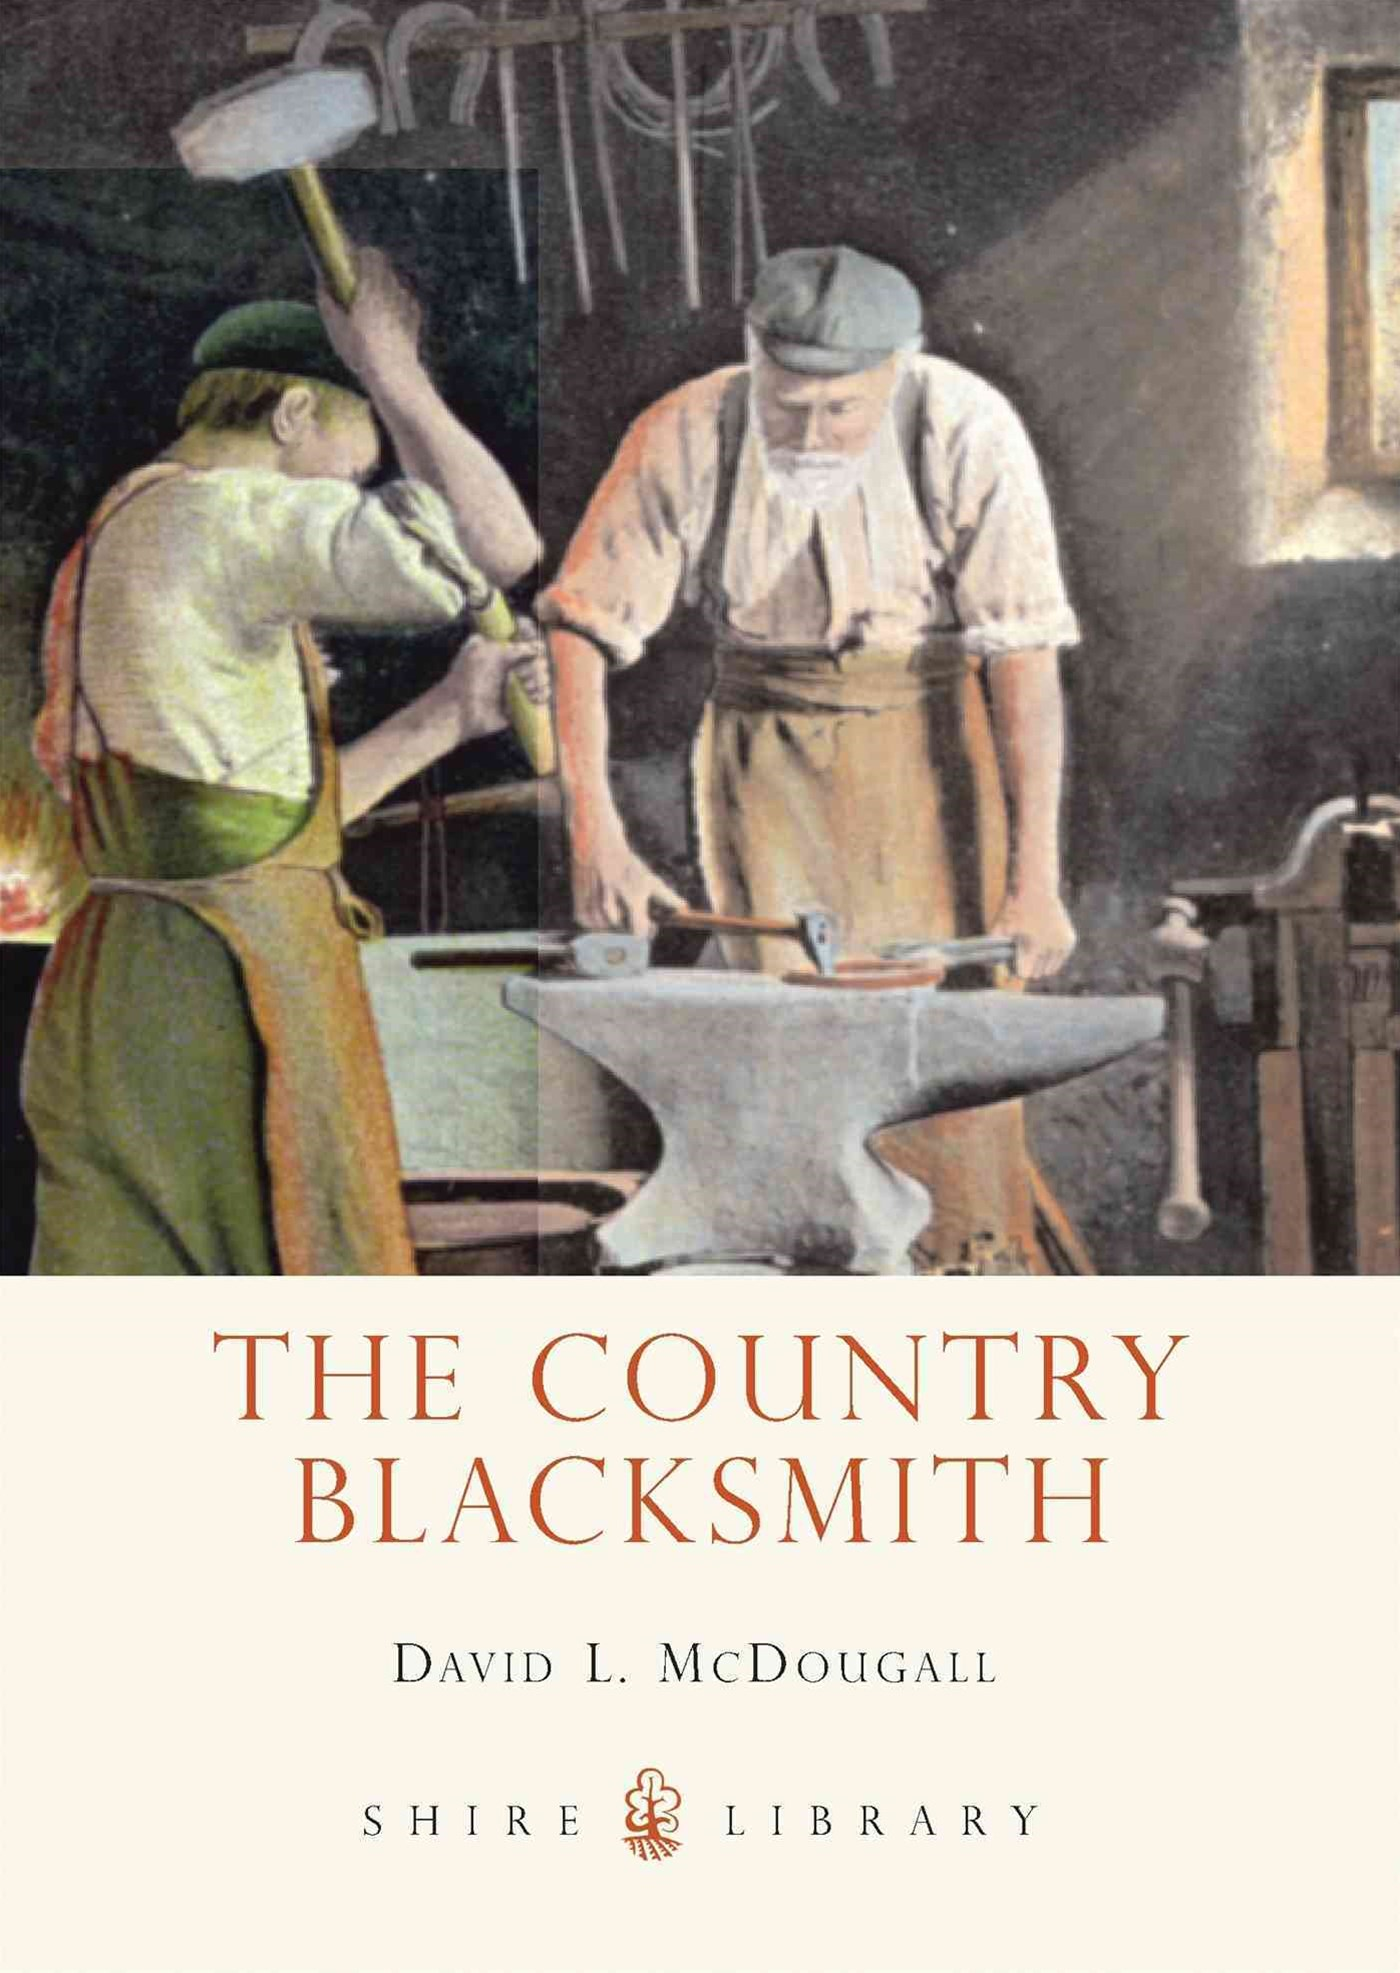 The Country Blacksmith